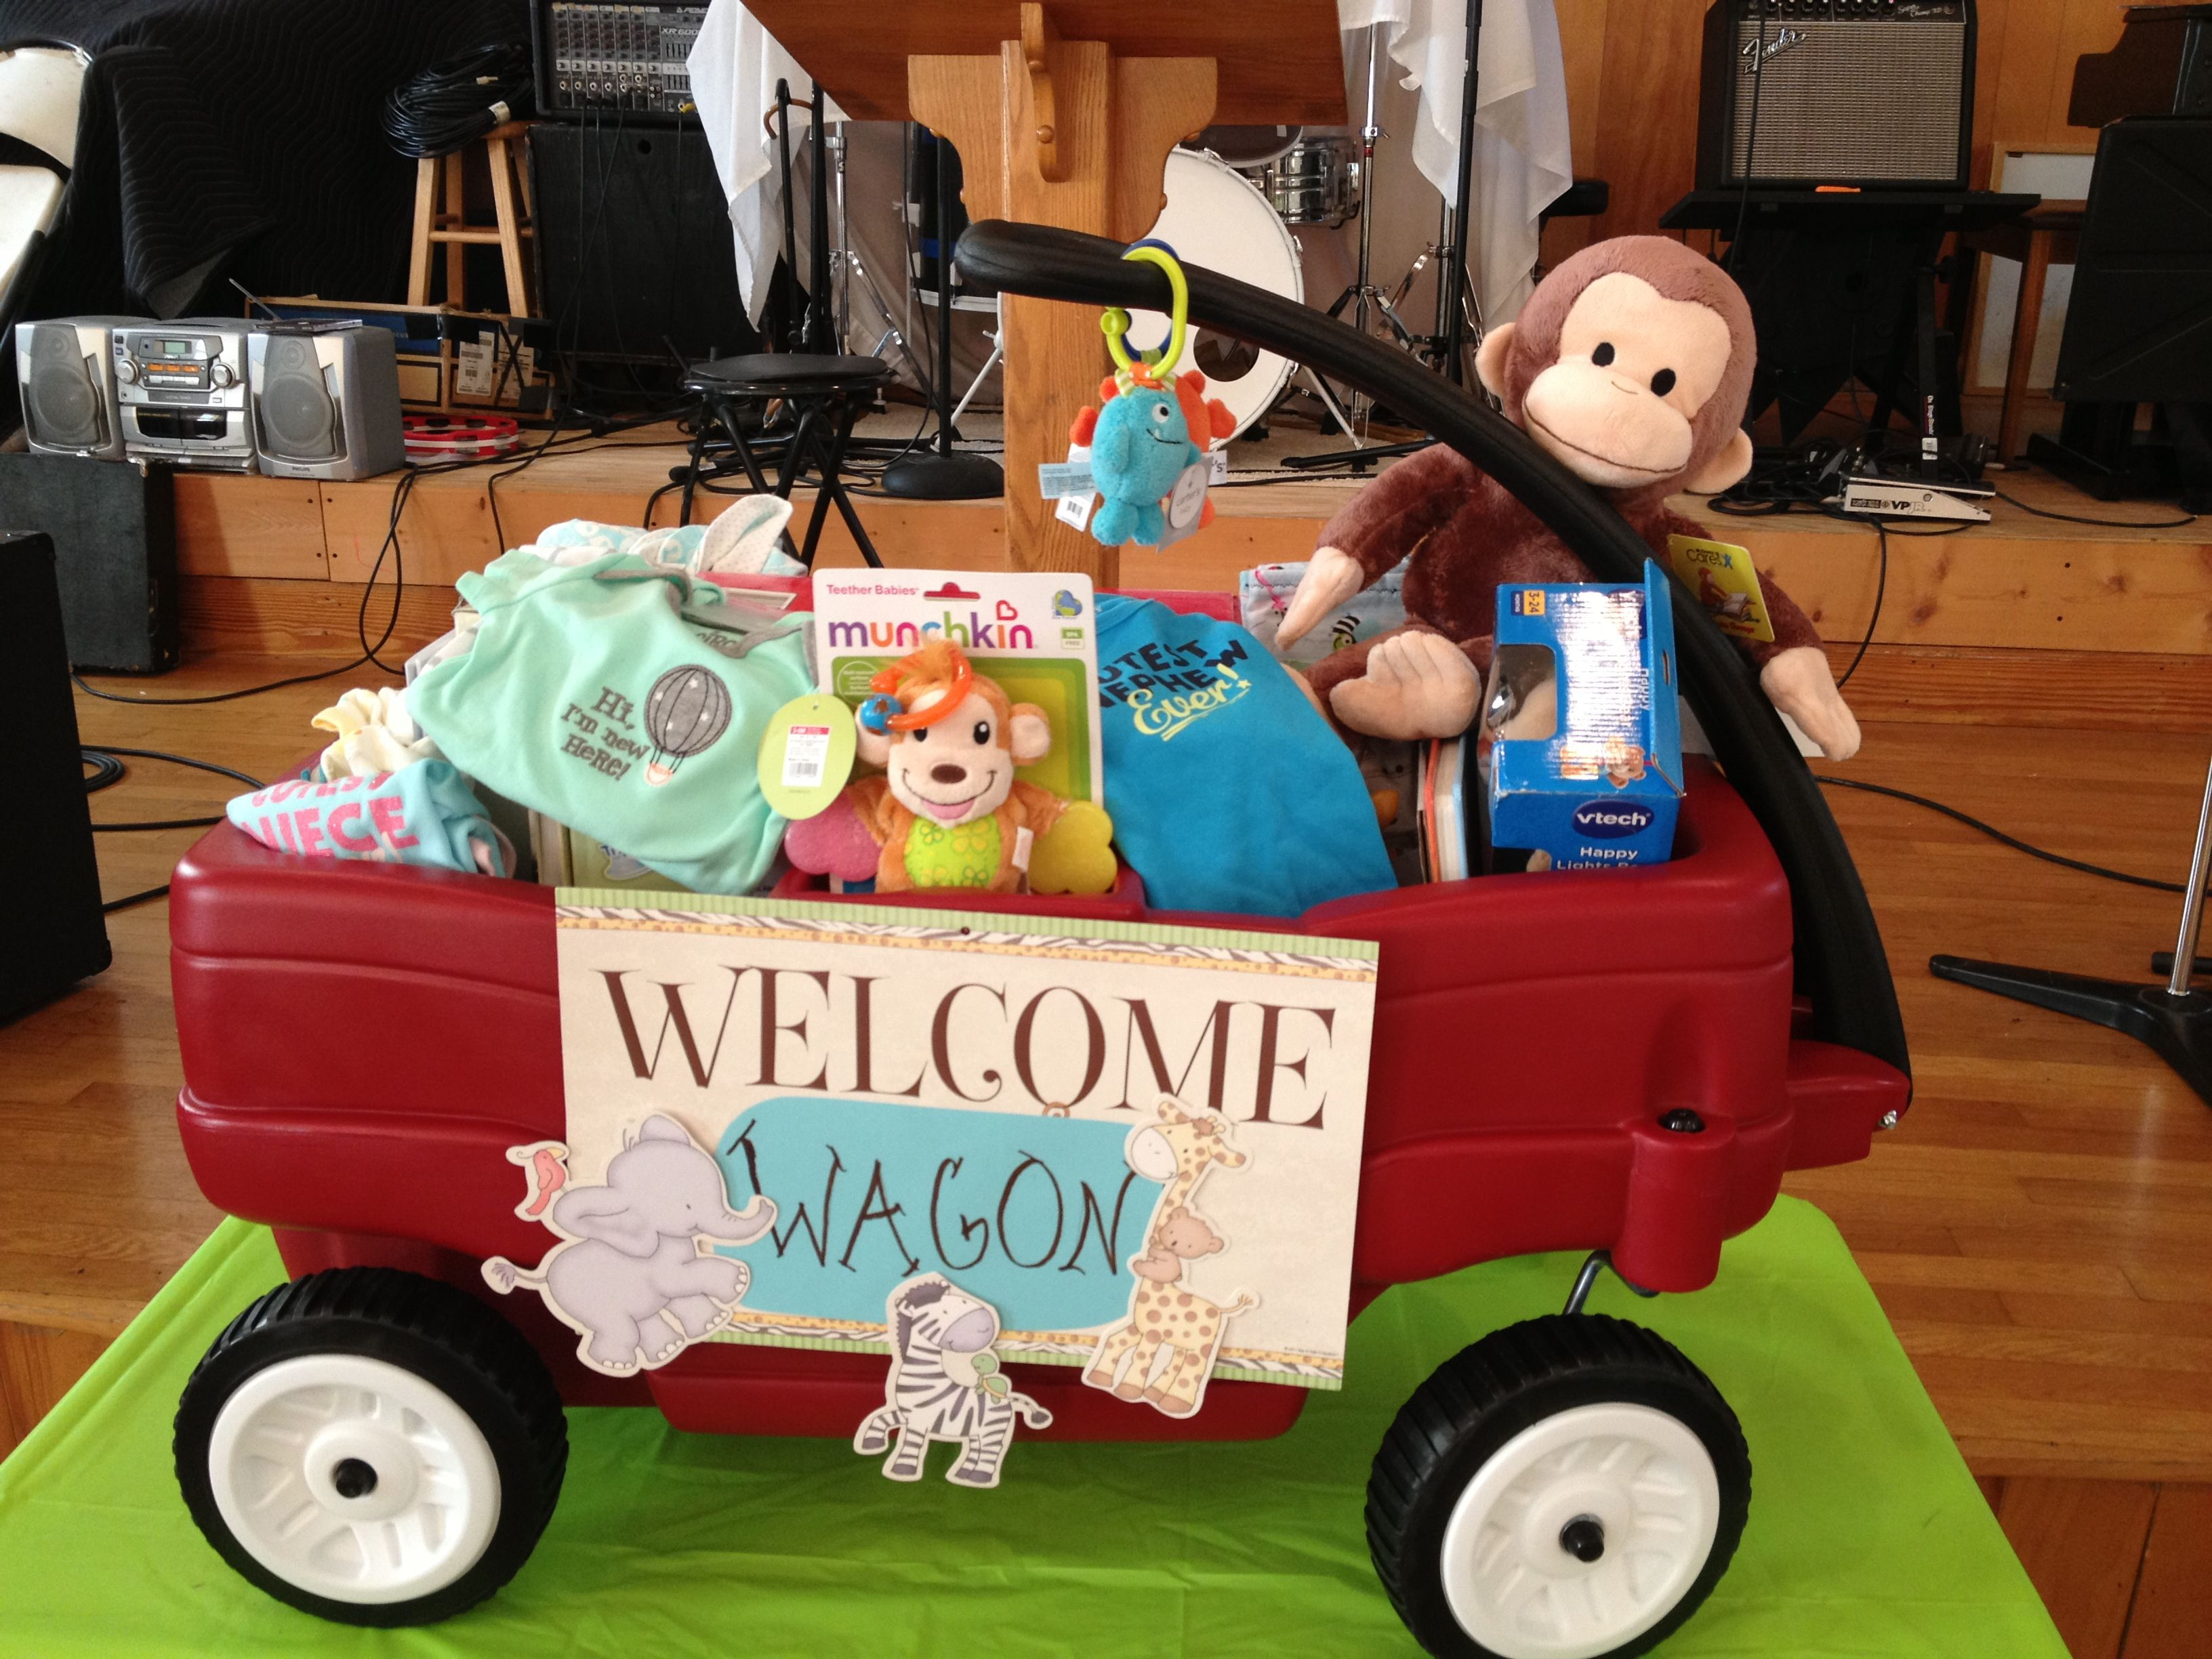 Baby Gifts Ideas Pinterest : Welcome wagon baby shower gift ideas